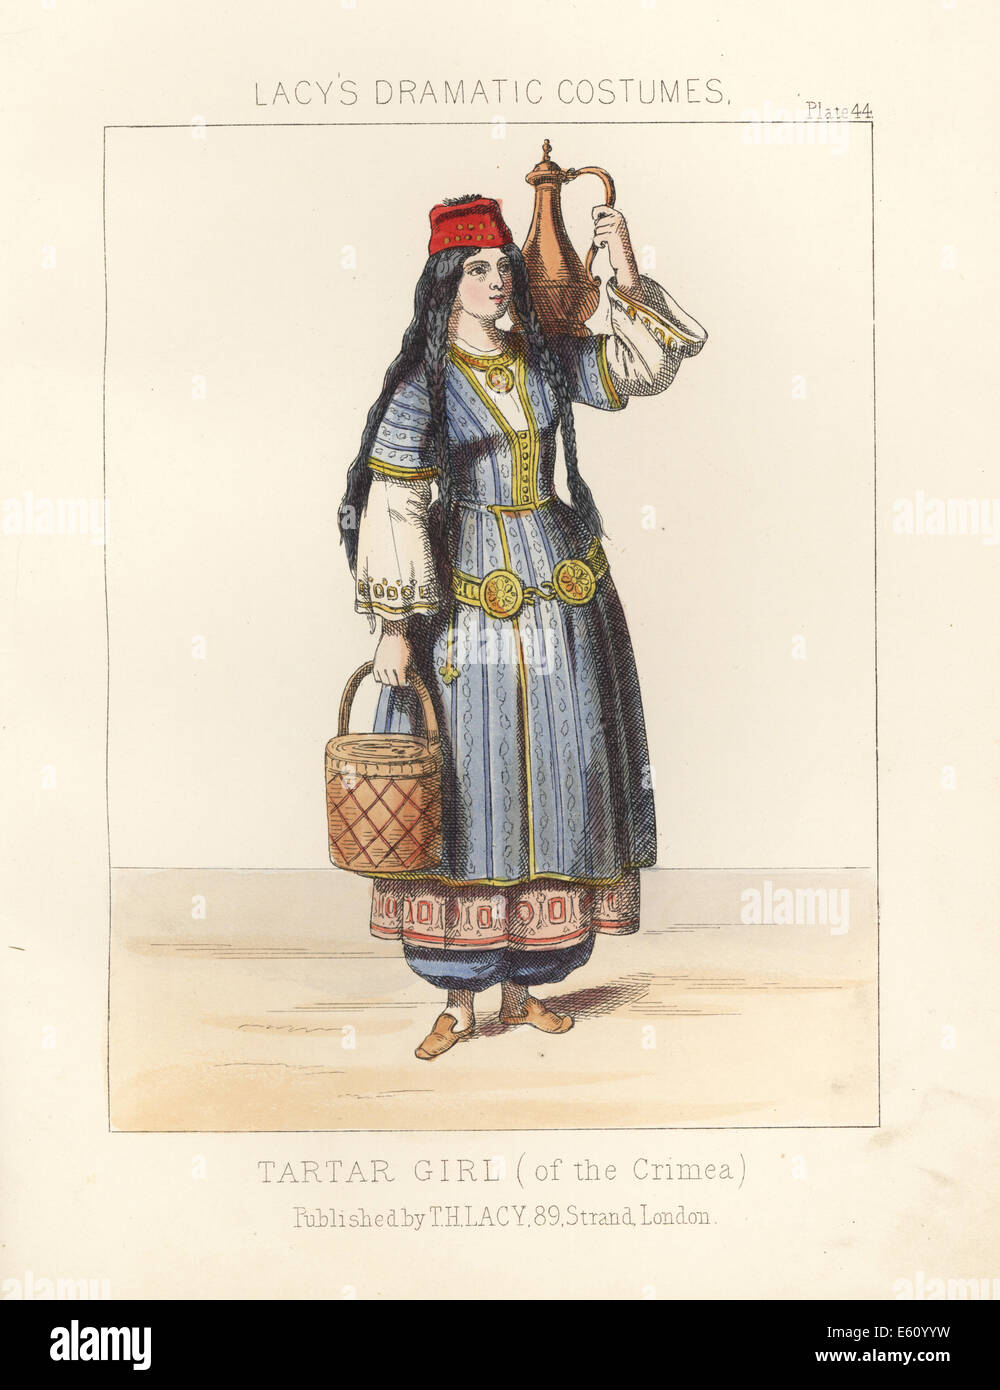 Tartar (Tatar) girl of the Crimea with water jug and basket, 19th century. - Stock Image